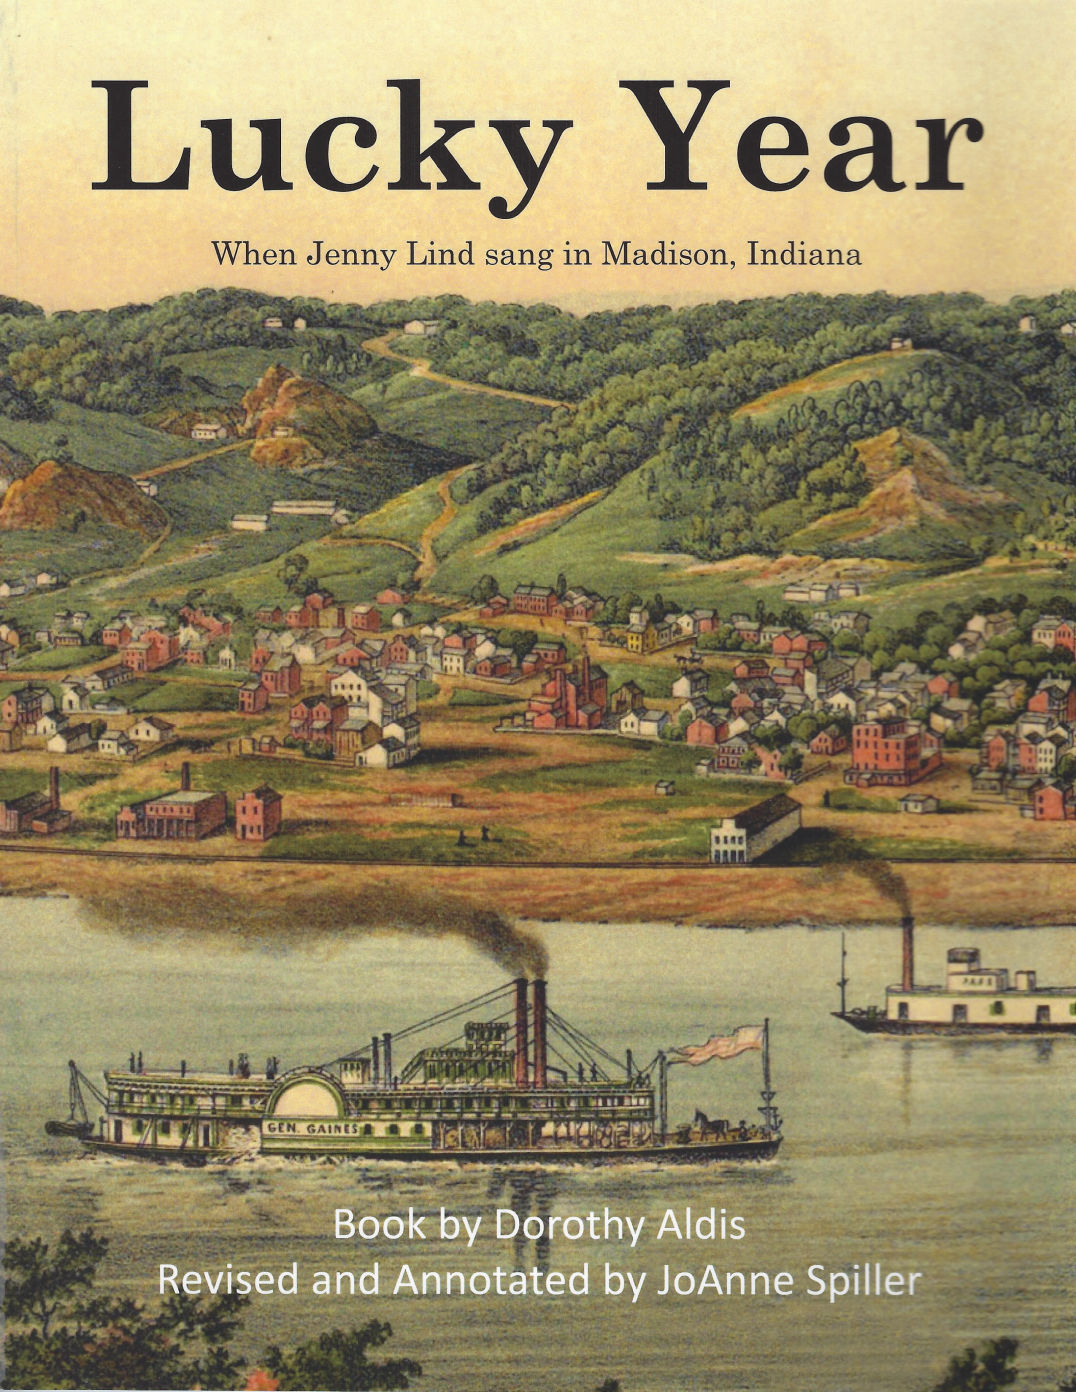 Picture of cover of book titled Lucky Year